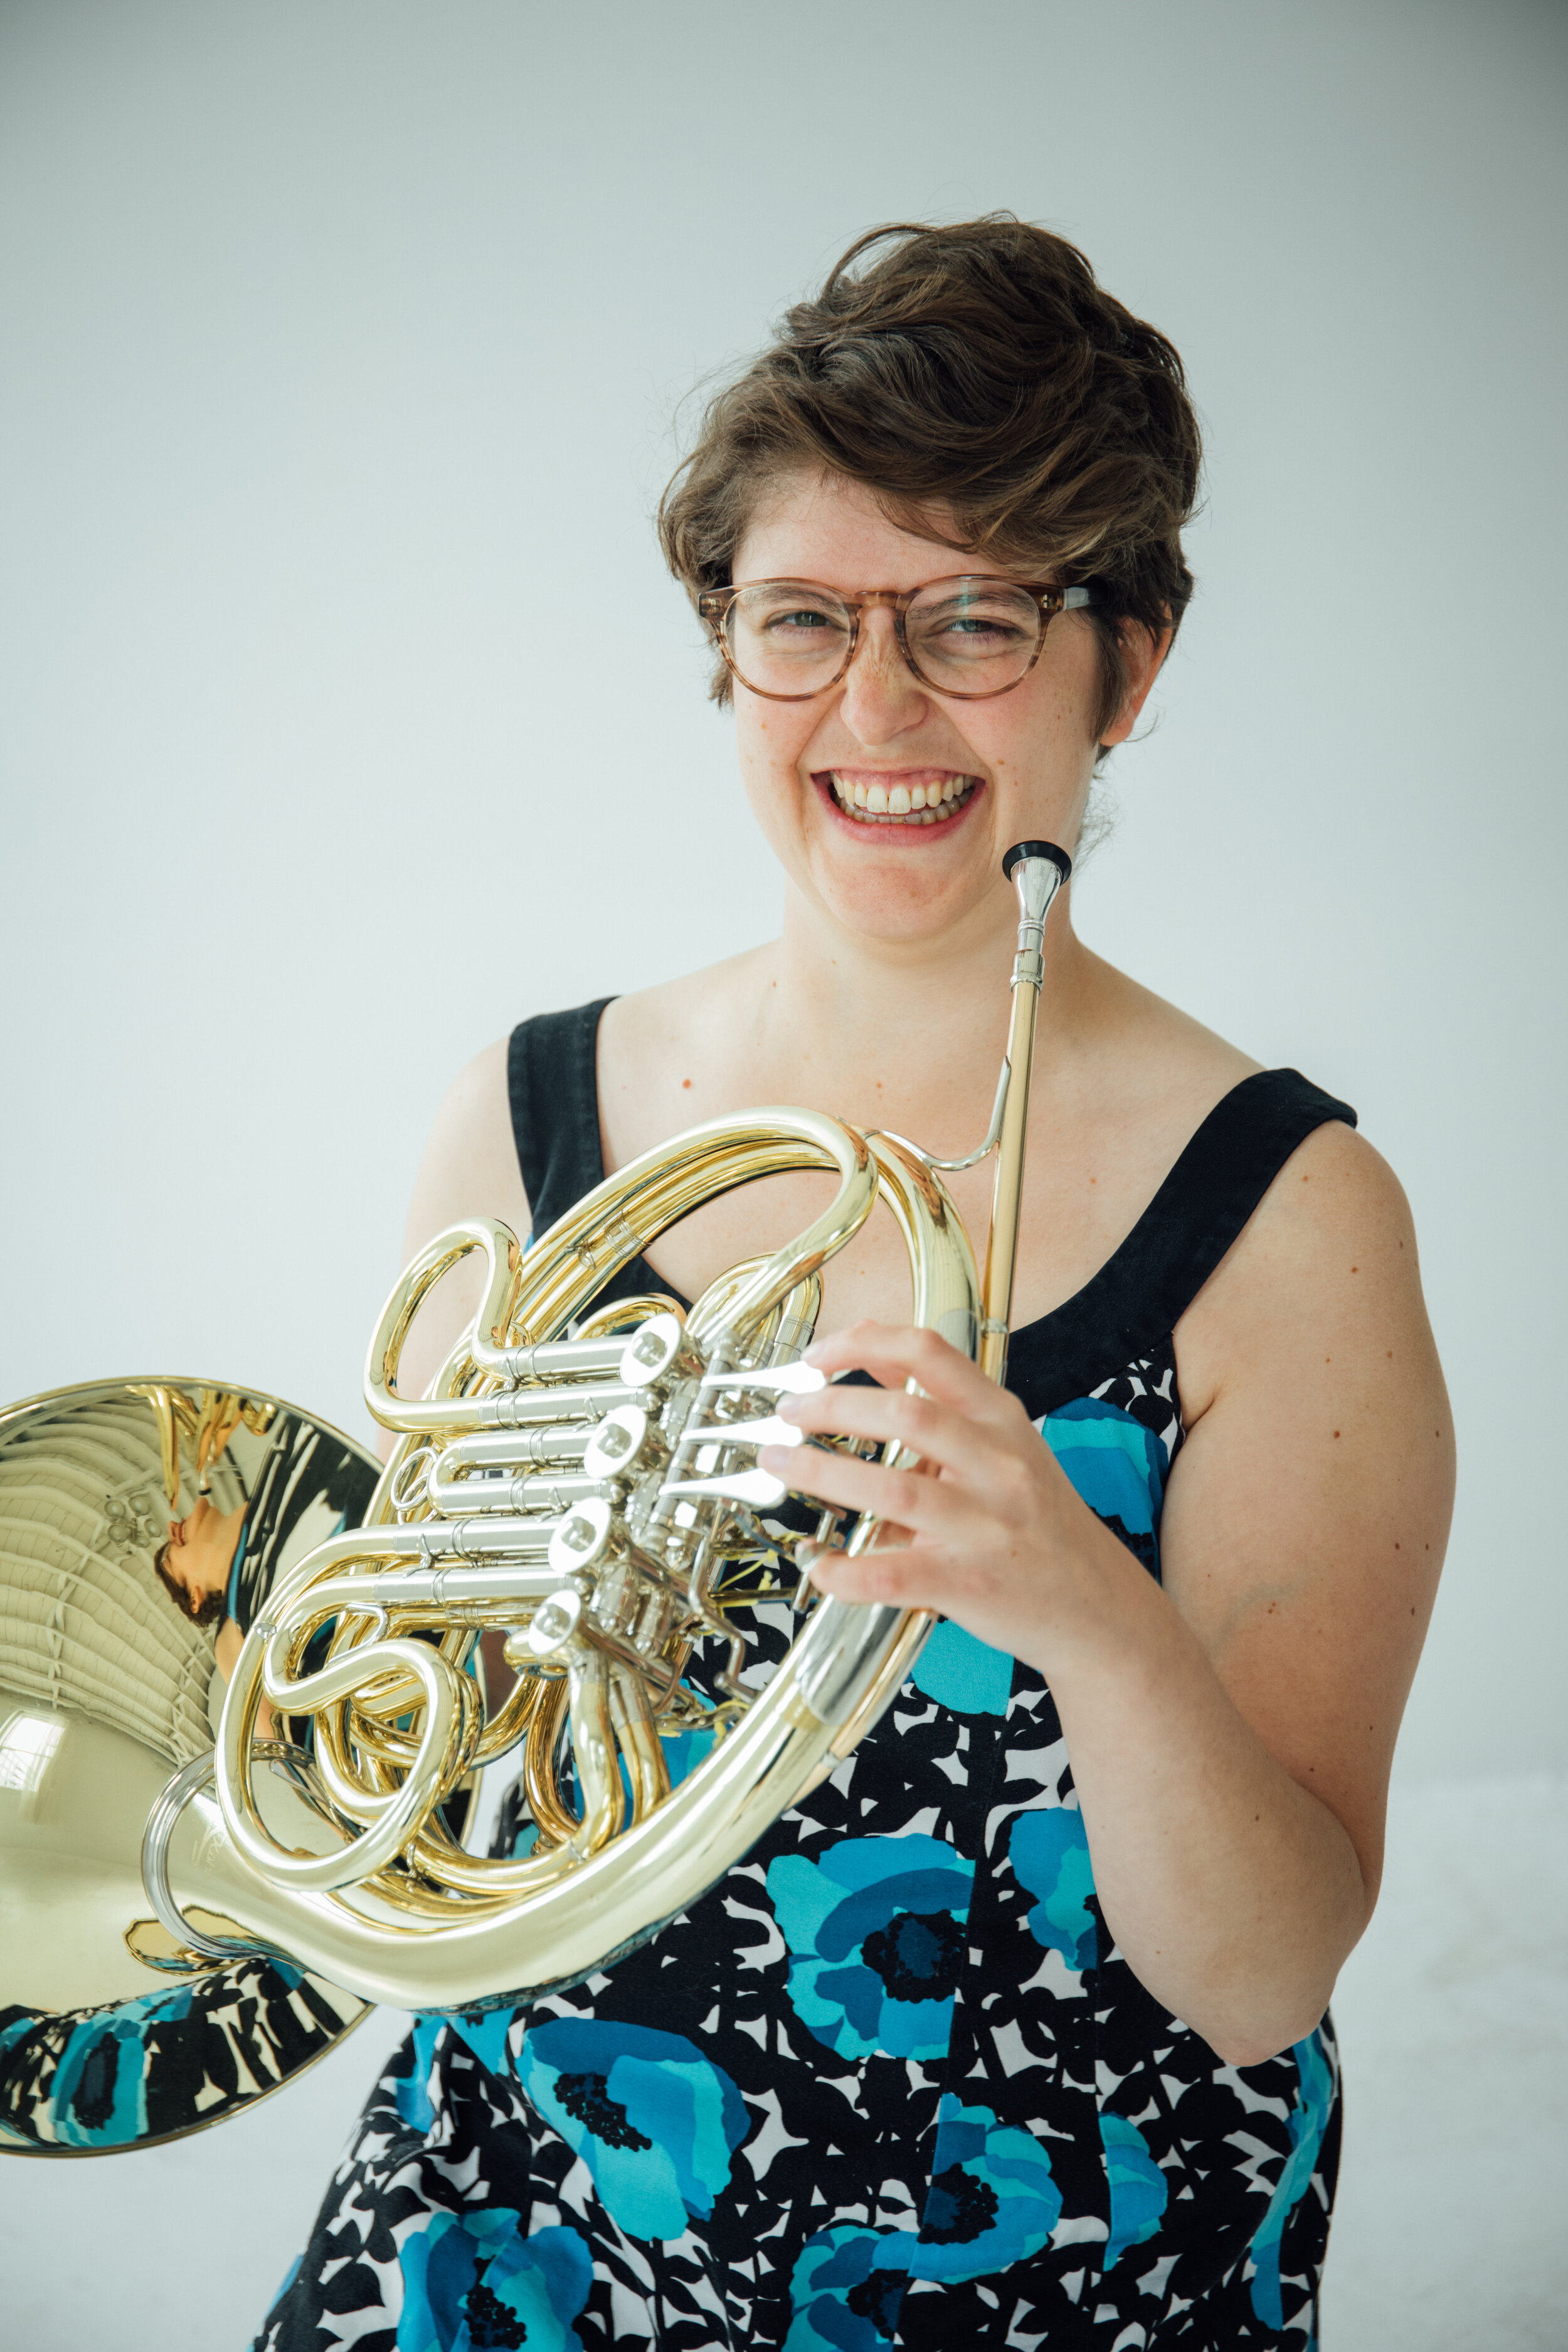 Rebecca Olason, horn - Hornist and educator Rebecca Olason is passionate about music both as a tradition and as a living art form. In addition to performing with Onomatopoeia, she is a member of the Rose City Brass Quintet. She was the fourth horn in the Newport Symphony and Portland Columbia Symphony Orchestra, and performs as a substitute with various orchestras in the Pacific Northwest, including the Oregon Symphony and Oregon Ballet Theater orchestra.As an avid and passionate teacher, Rebecca's goal is to help her students discover their passions and goals in music. She has taught at Clackamas Community College, George Fox University, her own private studio and in clinics across the tri-county area.Rebecca graduated Summa Cum Laude from the University of Oregon with a Bachelors of Music in Horn Performance and with a Masters of Music in Horn Performance from the Peabody Conservatory of the Johns Hopkins University, where she studied with Lydia Van Dreel and Denise Tryon, respectively.